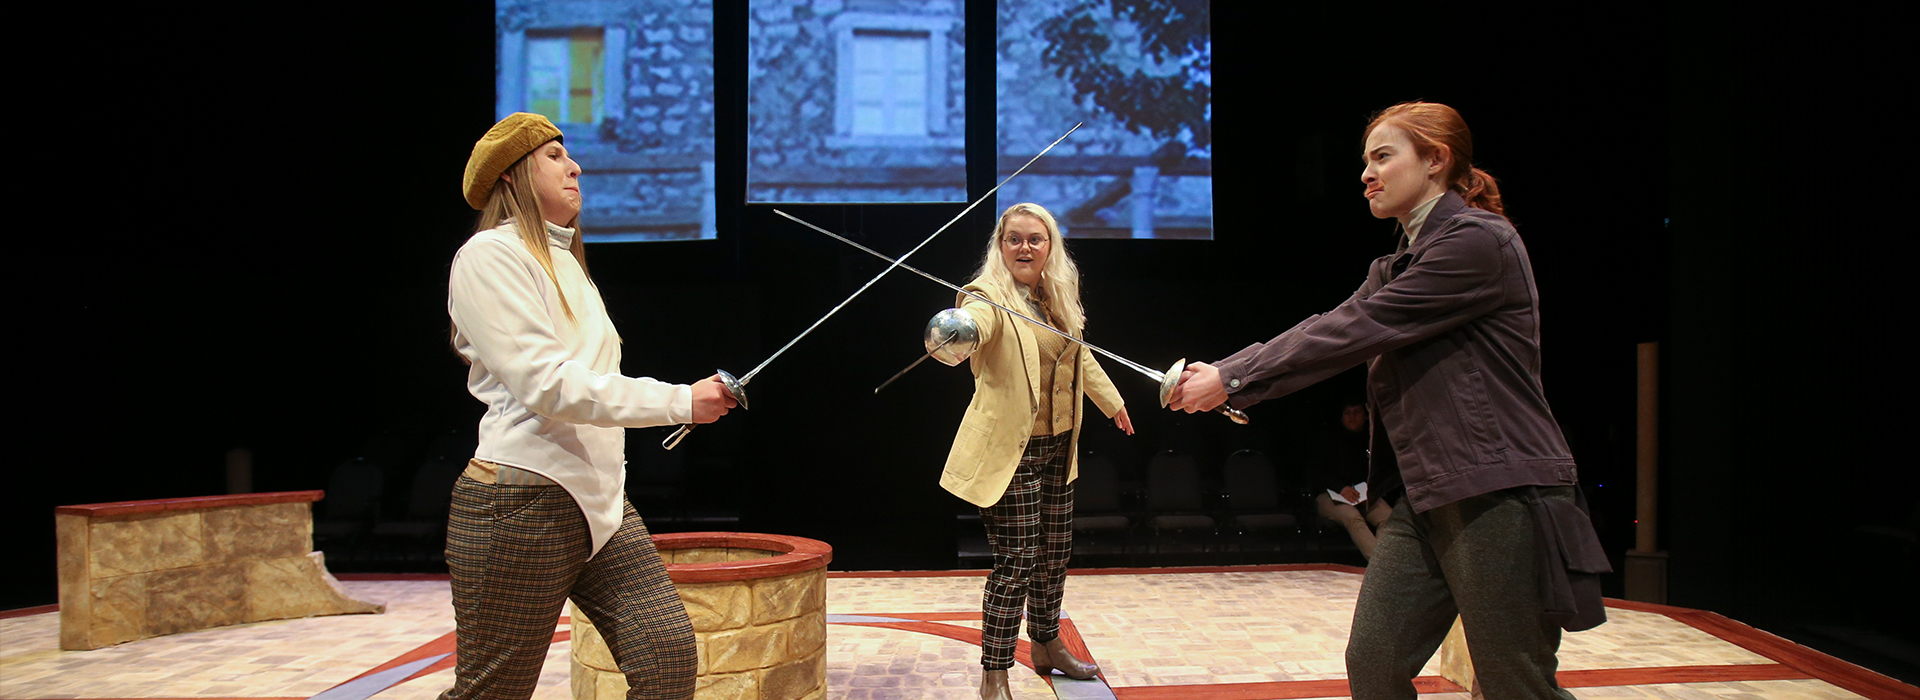 CSUSB Theatre Arts presents Shakespeare's classic comedy 'Twelfth Night'